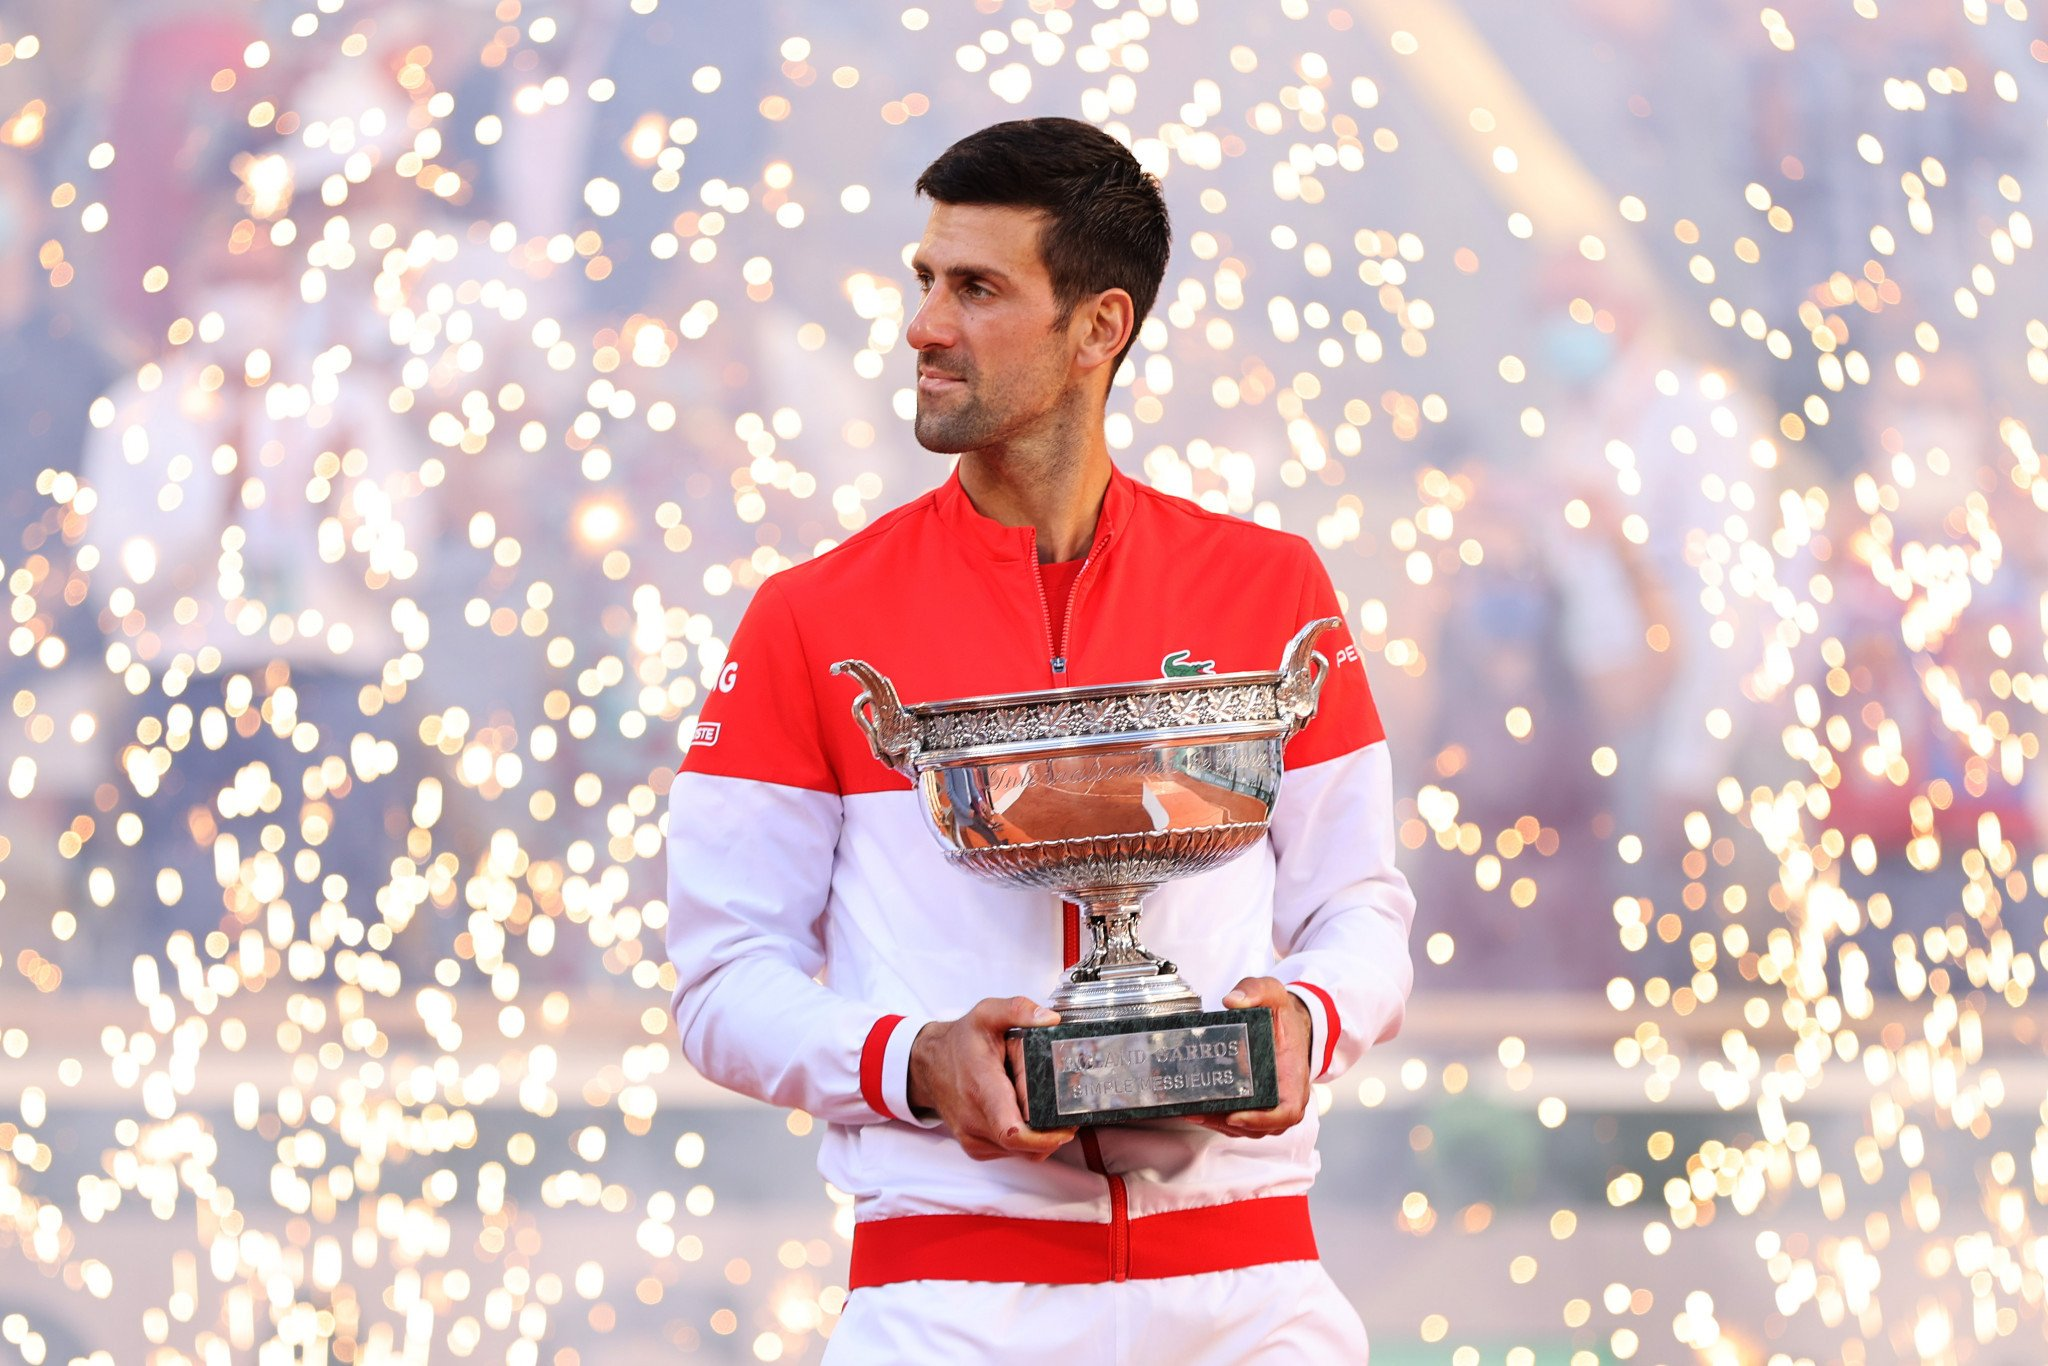 Novak Djokovic fought back from two sets down to win the French Open - his 19th Grand Slam victory ©Getty Images